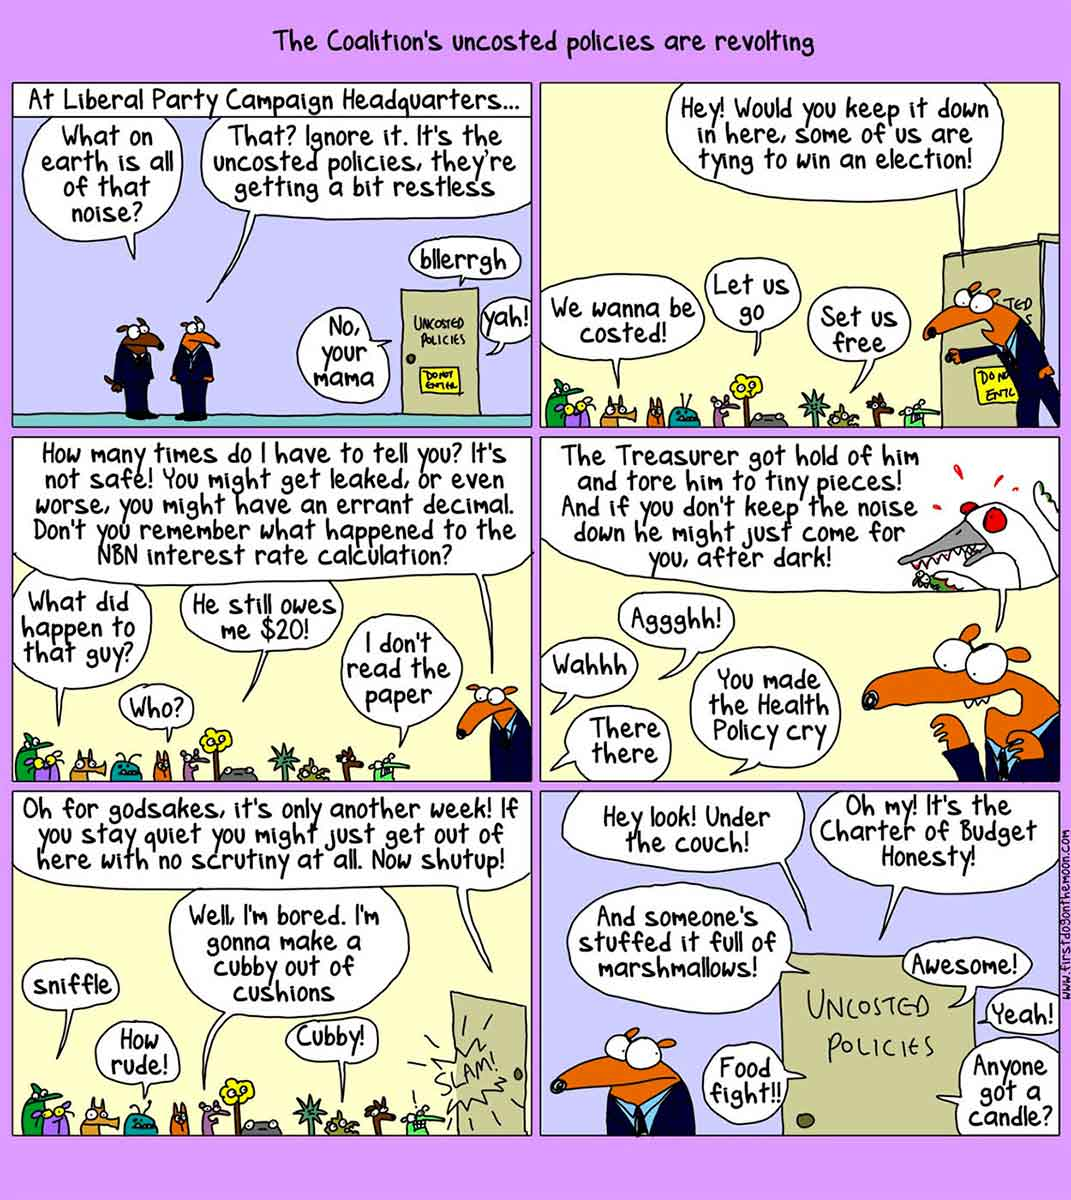 A six-panel cartoon depicting the Liberal Party campaign headquarters. At the top of the cartoon is written 'The Coalition's uncosted policies are revolting'. In the first panel, two dogs in suits stand outside a door. Above is written 'At Liberal Party Campaign Headquarters ...' On a door nearby is written 'Uncosted Policies'. Speech balloons emerge from the door. They say 'No, your mama', 'Blerrgh' and 'Yoh!' One dog says 'What on earth is all of that noise?' The other dog says 'That? Ignore it. It's the uncosted policies, they're getting a bit restless'. In the next panel, one of the dogs enters the room of the Uncosted Policies. Many small and unusual animals mill about. The dog says 'Hey! Would you keep it down in here. Some of us are trying to win an election!' Some policies reply with 'We wanna be costed!', 'Let us go' and 'Set us free'. In the third panel, the dog says 'How many times do I have to tell you? It's not safe! You might get leaked, or even worse, you might have an errant decimal. Don't you remember what happened to the NBN interest rate calculation?' Some policies reply with 'What happened to that guy?', 'Who?', 'He still owes me $20!' and 'I don't read the paper'. In the next panel, the dog says 'The Treasurer got hold of him and tore him to tiny pieces! And if you don't keep the noise down he might just come for you, after dark!' Some policies reply with 'Wahhh', 'Aggghh!', 'There there' and 'You made the Health Policy cry'. In the next panel, the dog says 'Oh for Godsakes, it's only another week! If you stay quiet you might just get out here with no scrutiny at all. Now shut up!' Some polices reply with 'Sniffle', 'How rude!', 'Well, I'm bored. I'm gonna make a cubby out of cushions' and 'Cubby!' The dog leaves and slams the door. In the last panel, the dog stands outside the door, listening to what is going in the Uncosted Policies room. Speech bubbles surround the door. They say 'Hey look! Under the couch!', 'Oh my! It's the Charter of Budget Honesty!', 'And someone's stuffed it full of marshmallows!', 'Food fight!', 'Awesome!', 'Yeah!' and 'Anyone got a candle?'  - click to view larger image